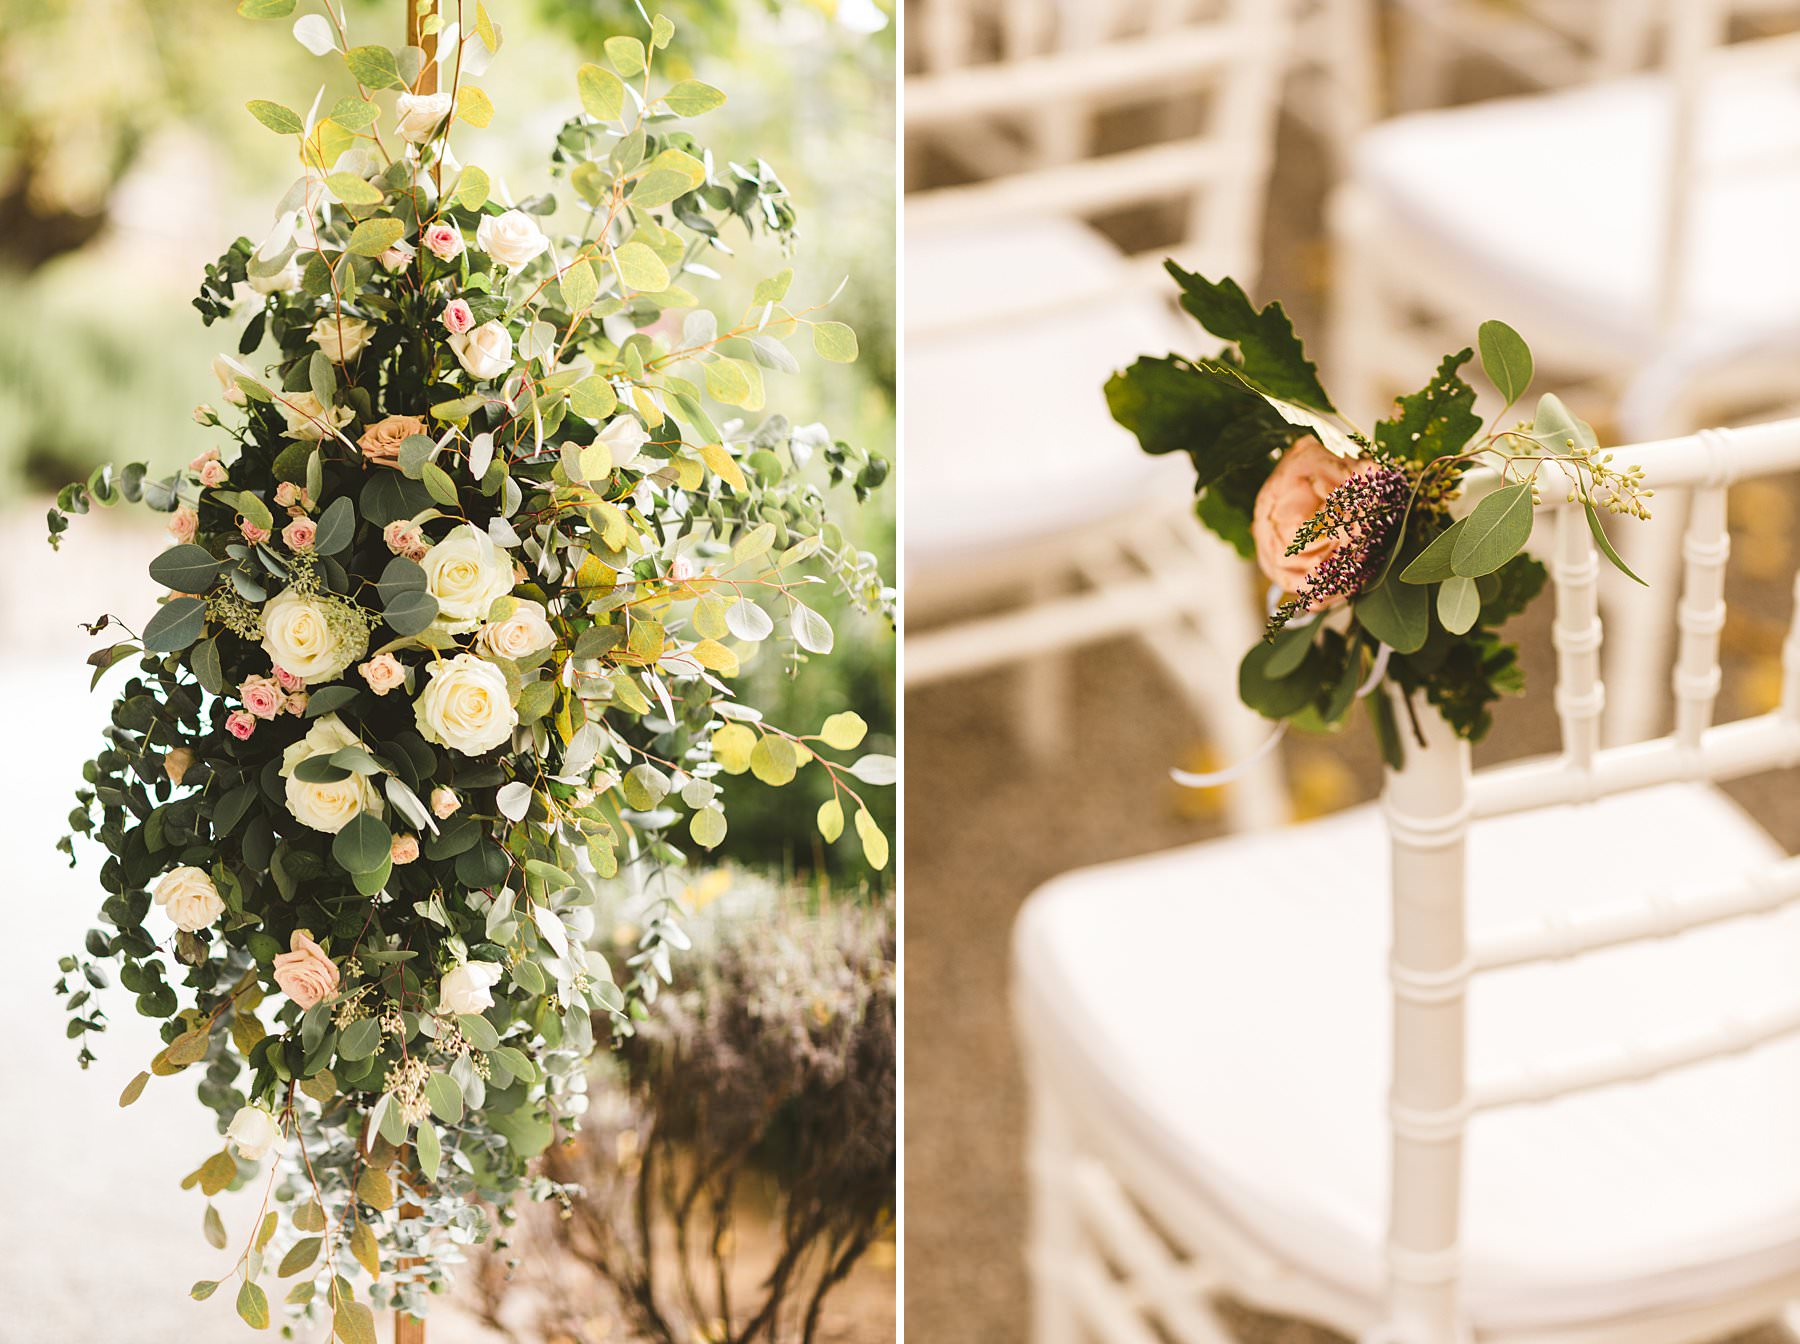 Getting married in the Italian countryside. The chosen location for this international wedding in Umbria was Relais Villa Monte Solare, a historic residence tucked in the countryside among rolling hills. The emotional symbolic ceremony was held in a courtyard close to the villa, surrounded by greenery and decorated with delicate flowers